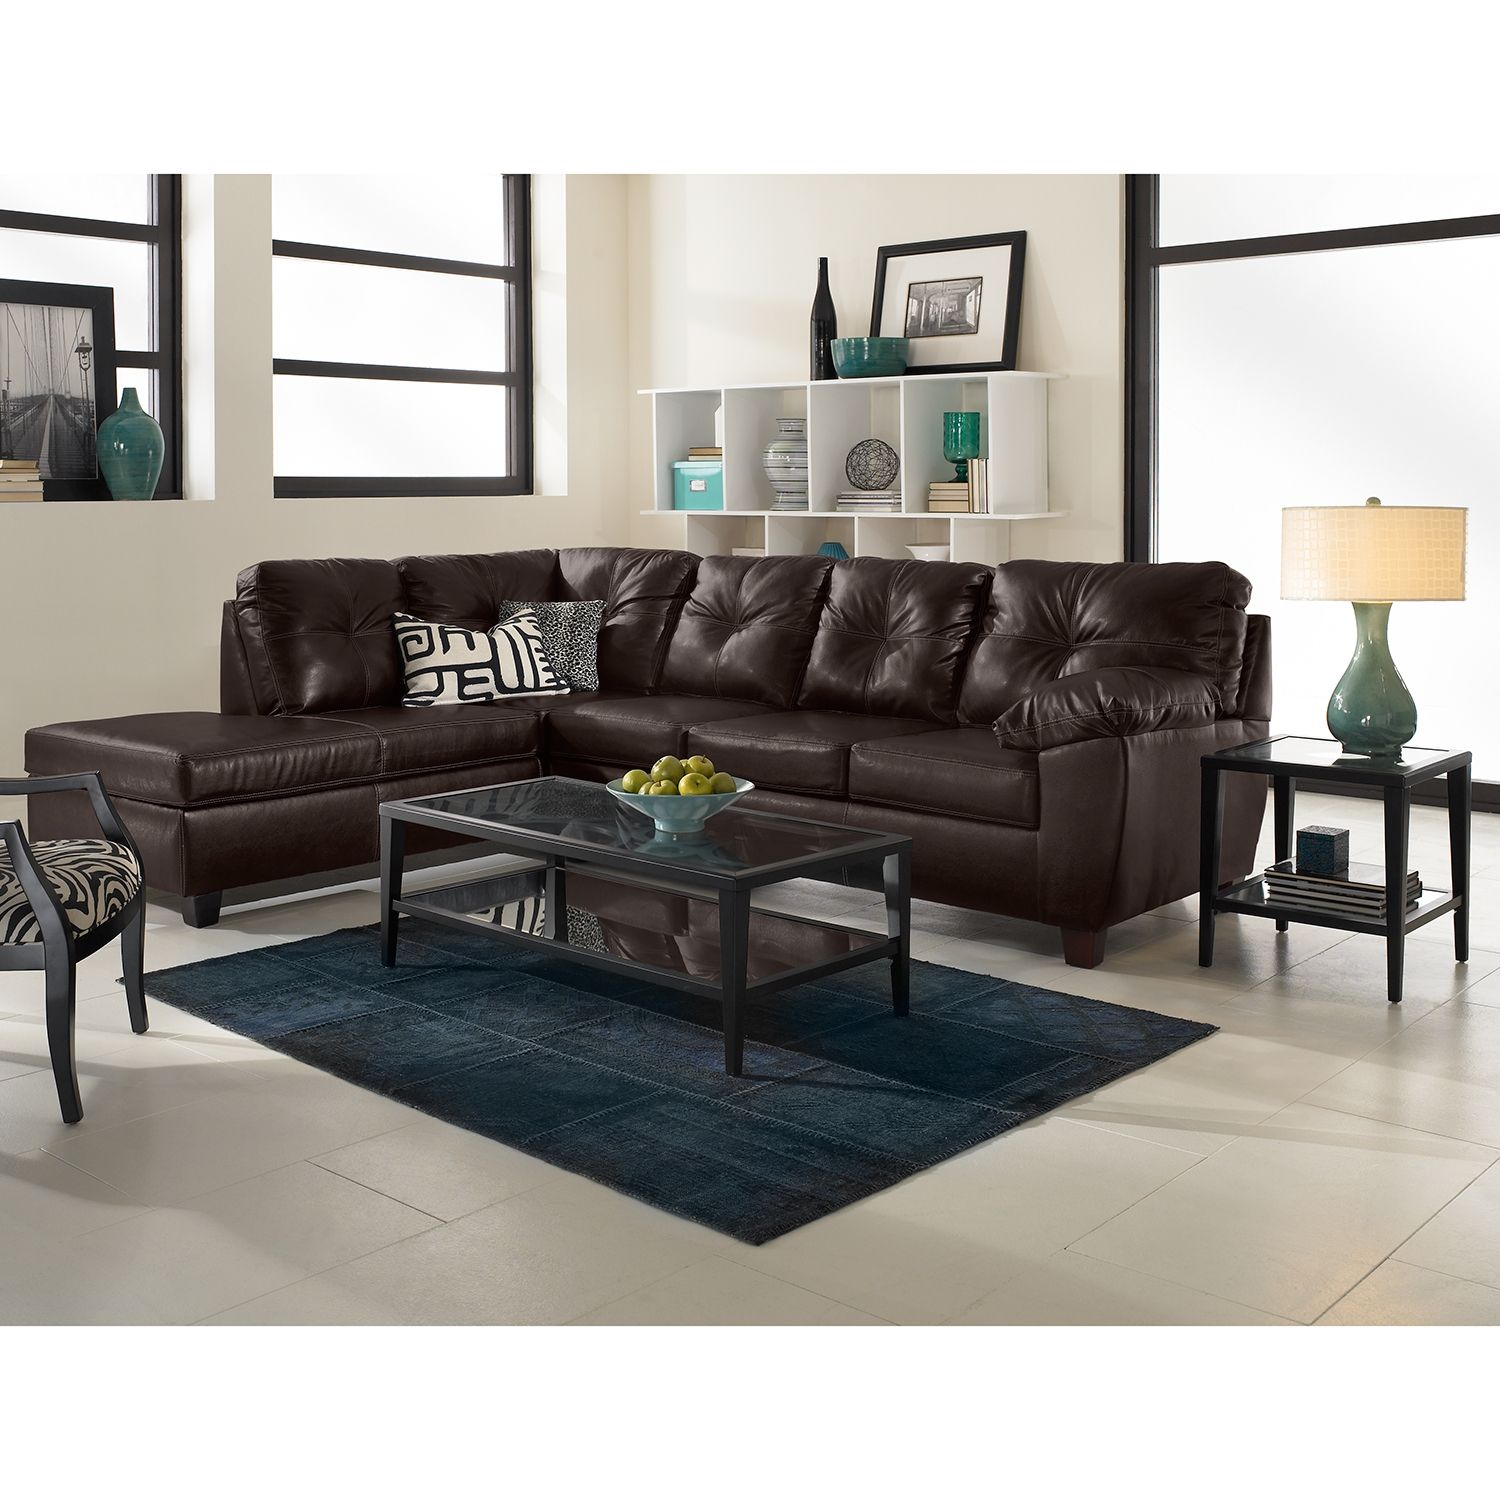 Living Room Furniture Rialto Brown 2 Pc Innerspring Sleeper